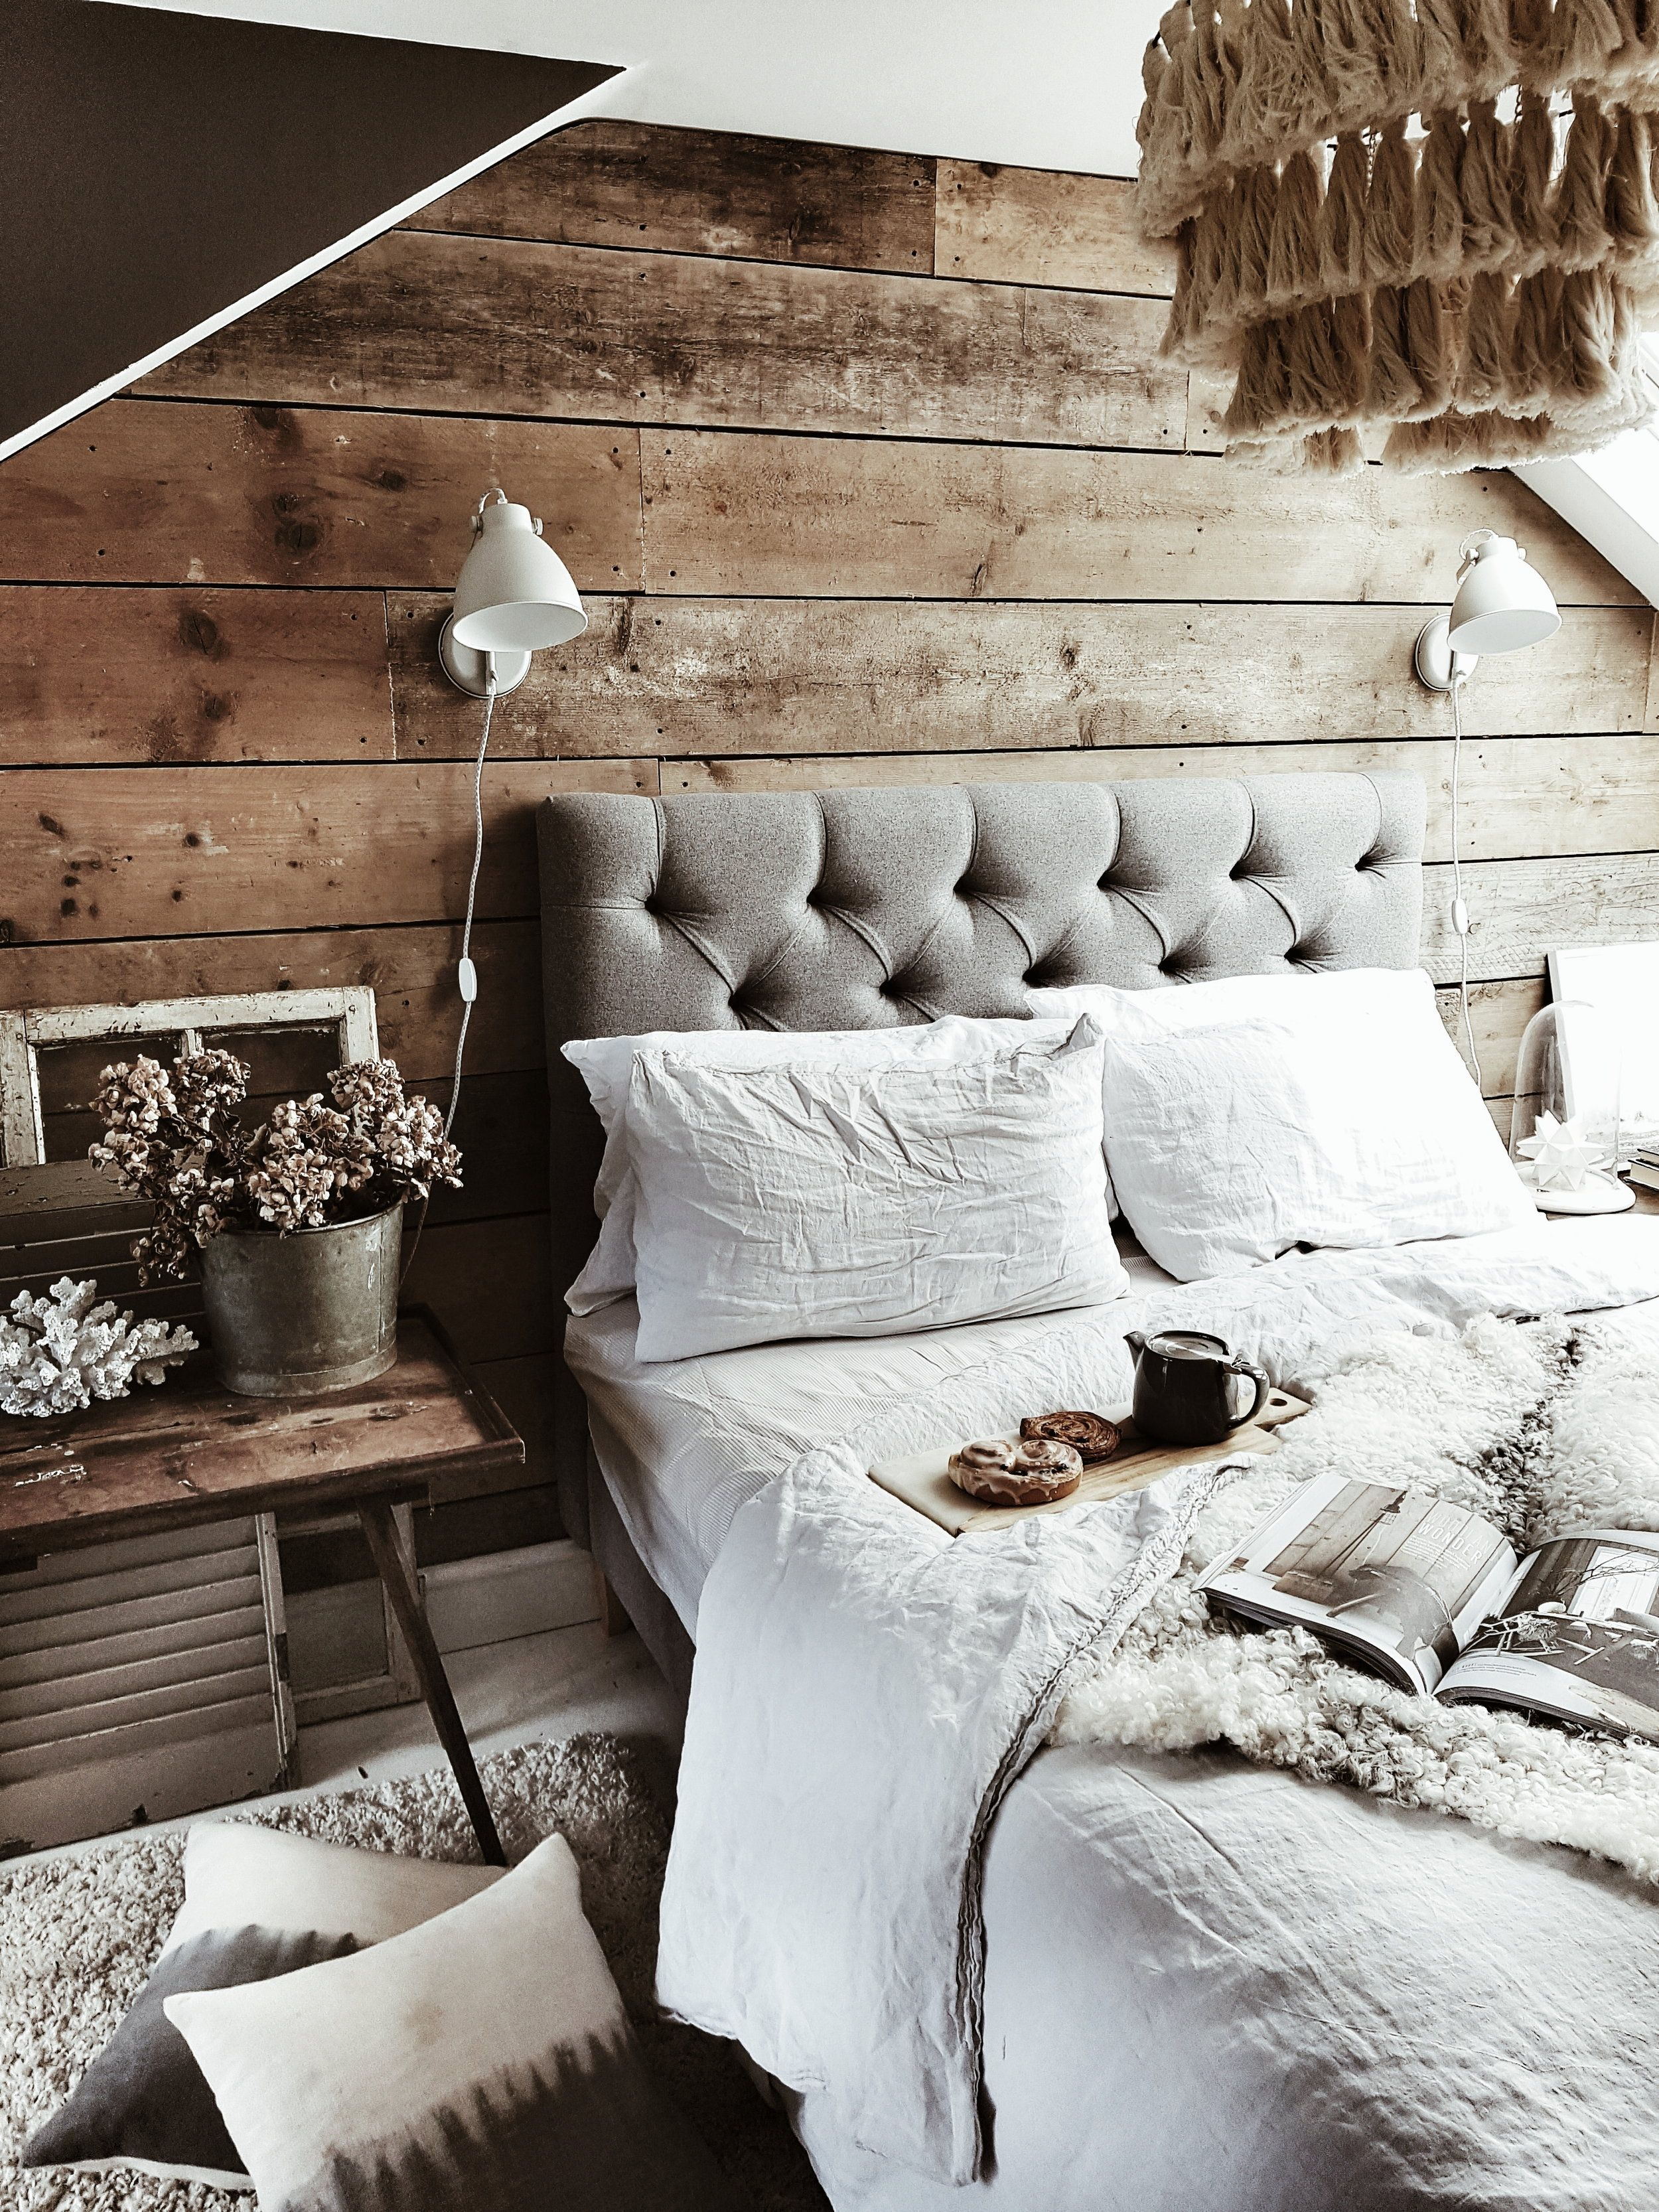 Creating A Relaxed Rustic Bedroom Malmo Moss Rustic Bedroom Rustic Bedroom Design Modern Rustic Bedrooms